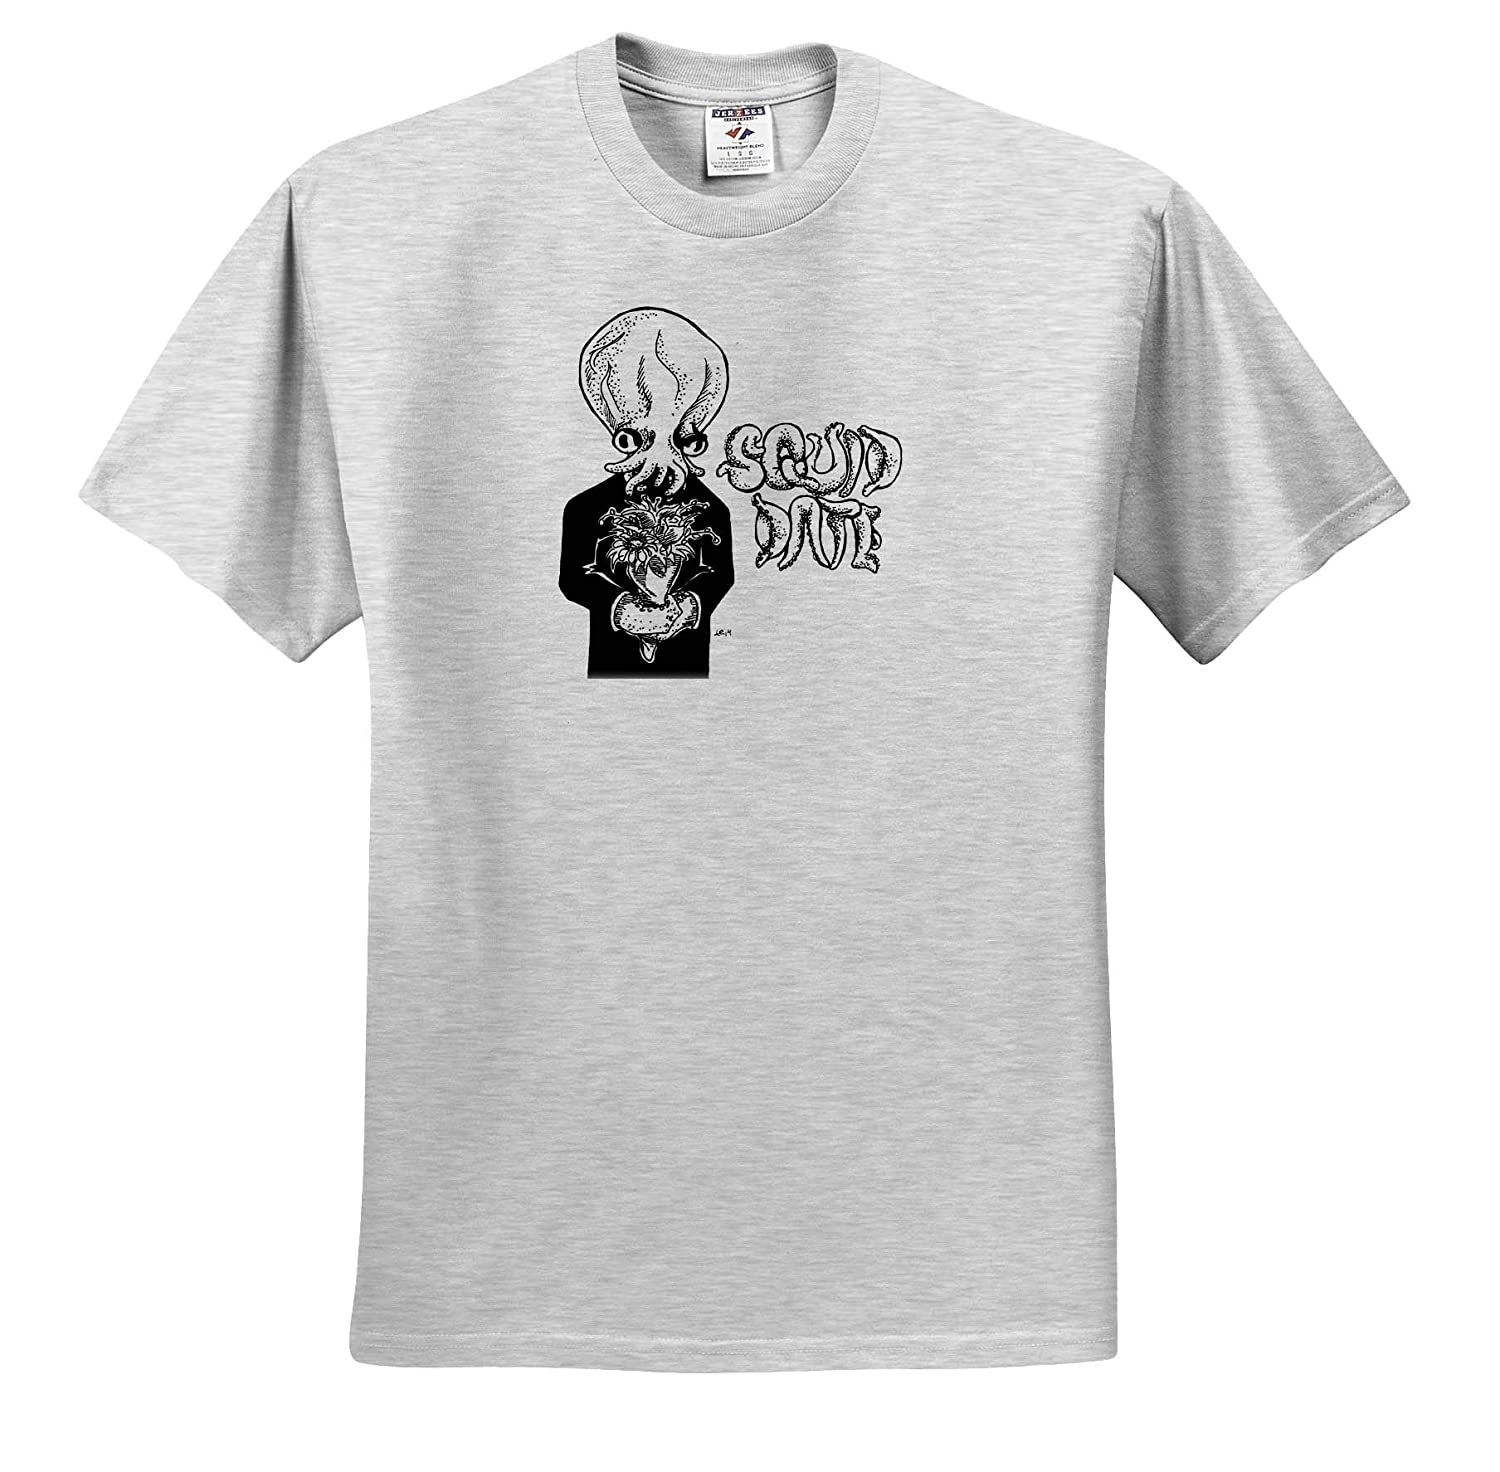 ts/_317528 Art A Squid Ready for The Big Date 3dRose Travis ECK Adult T-Shirt XL